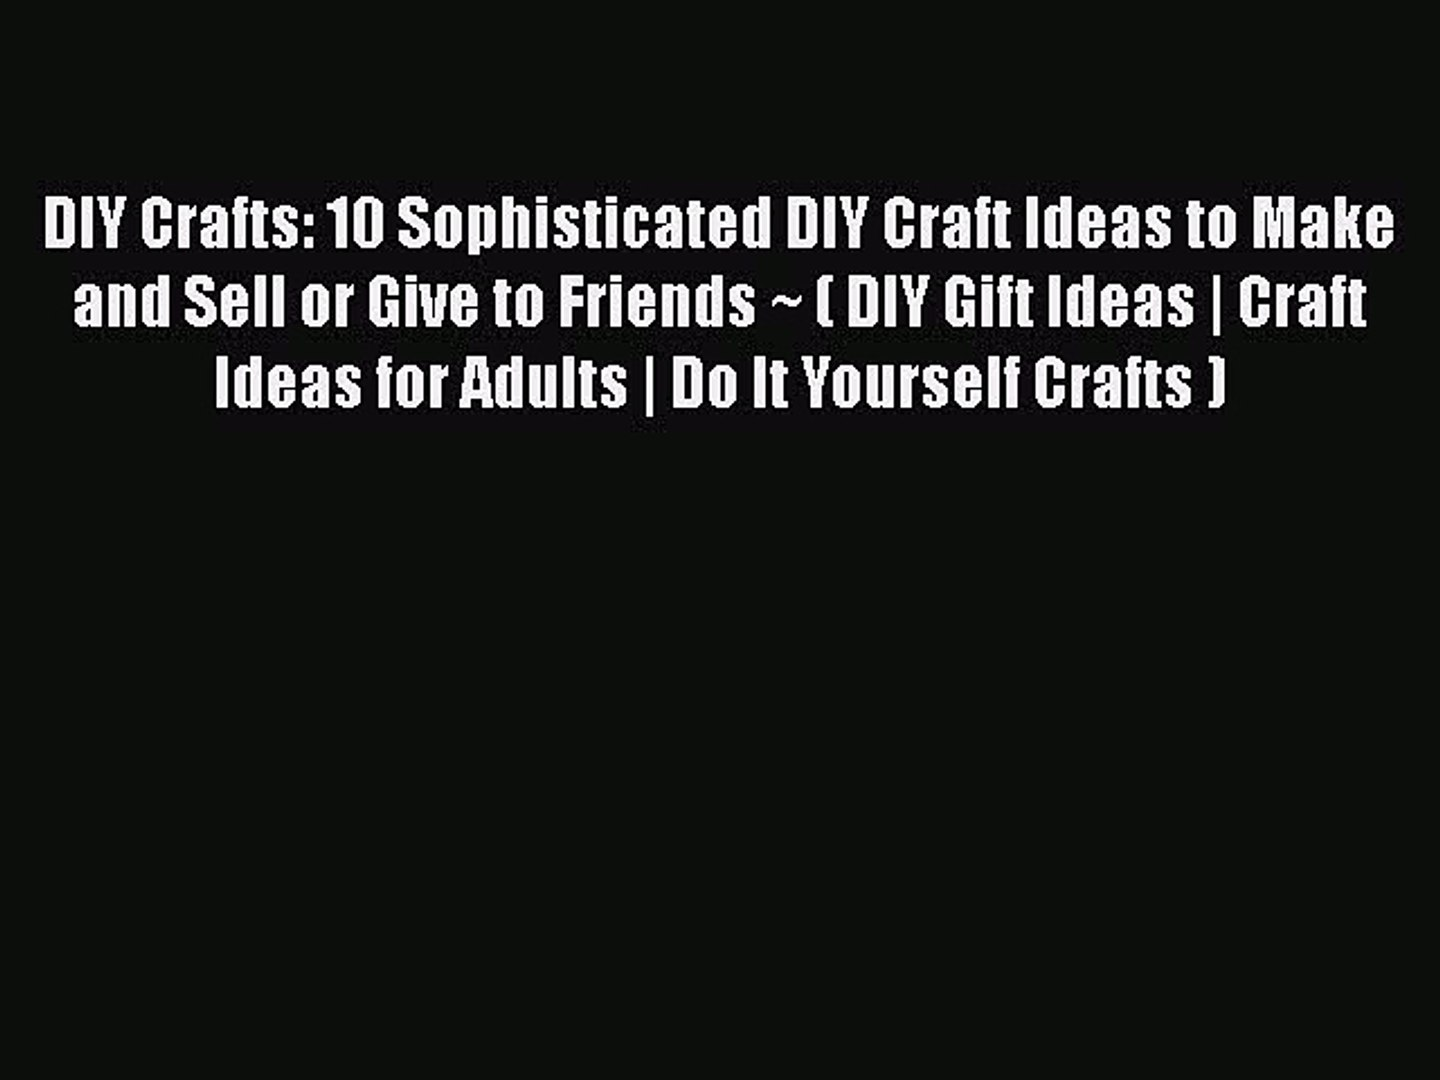 PDF DIY Crafts: 10 Sophisticated DIY Craft Ideas to Make and Sell or Give to Friends ~ ( DIY